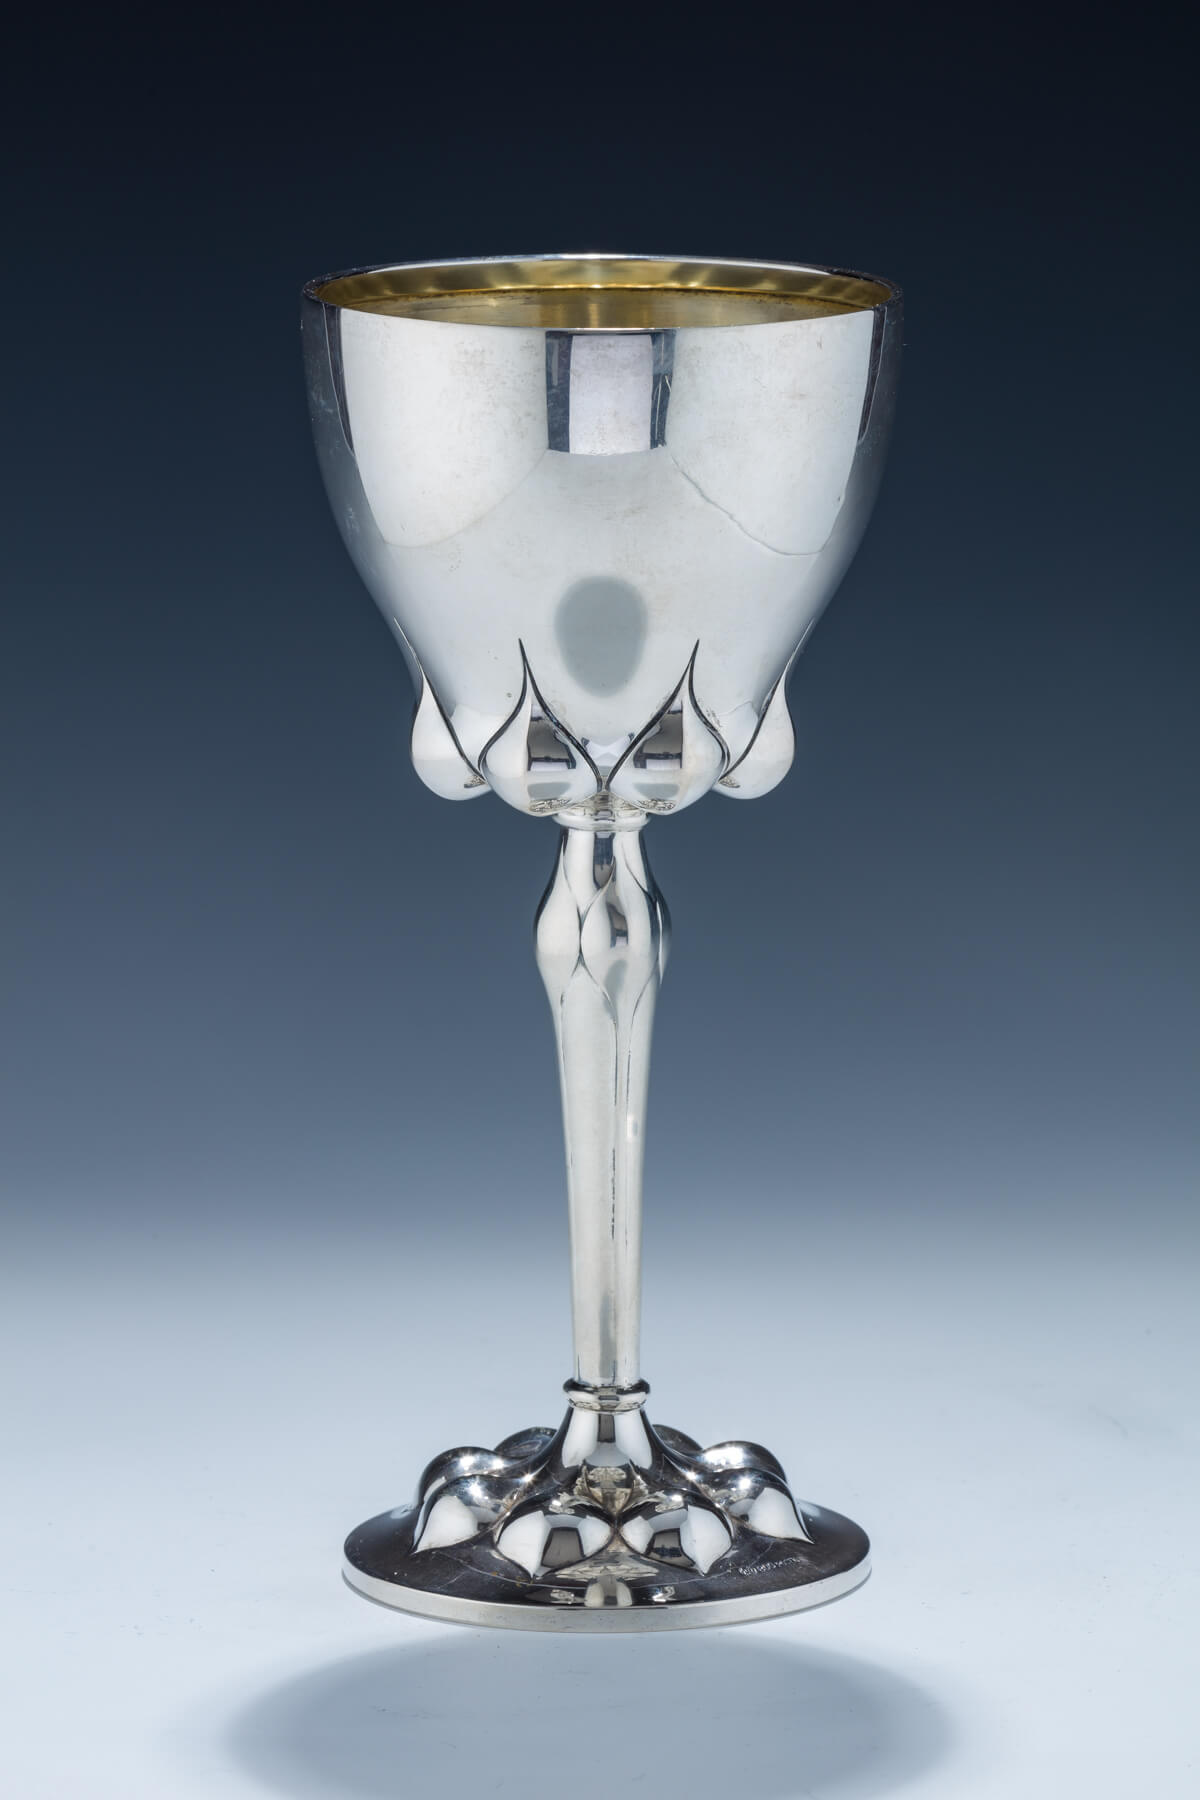 40. A Monumental Silver Goblet by Lazarus Posen